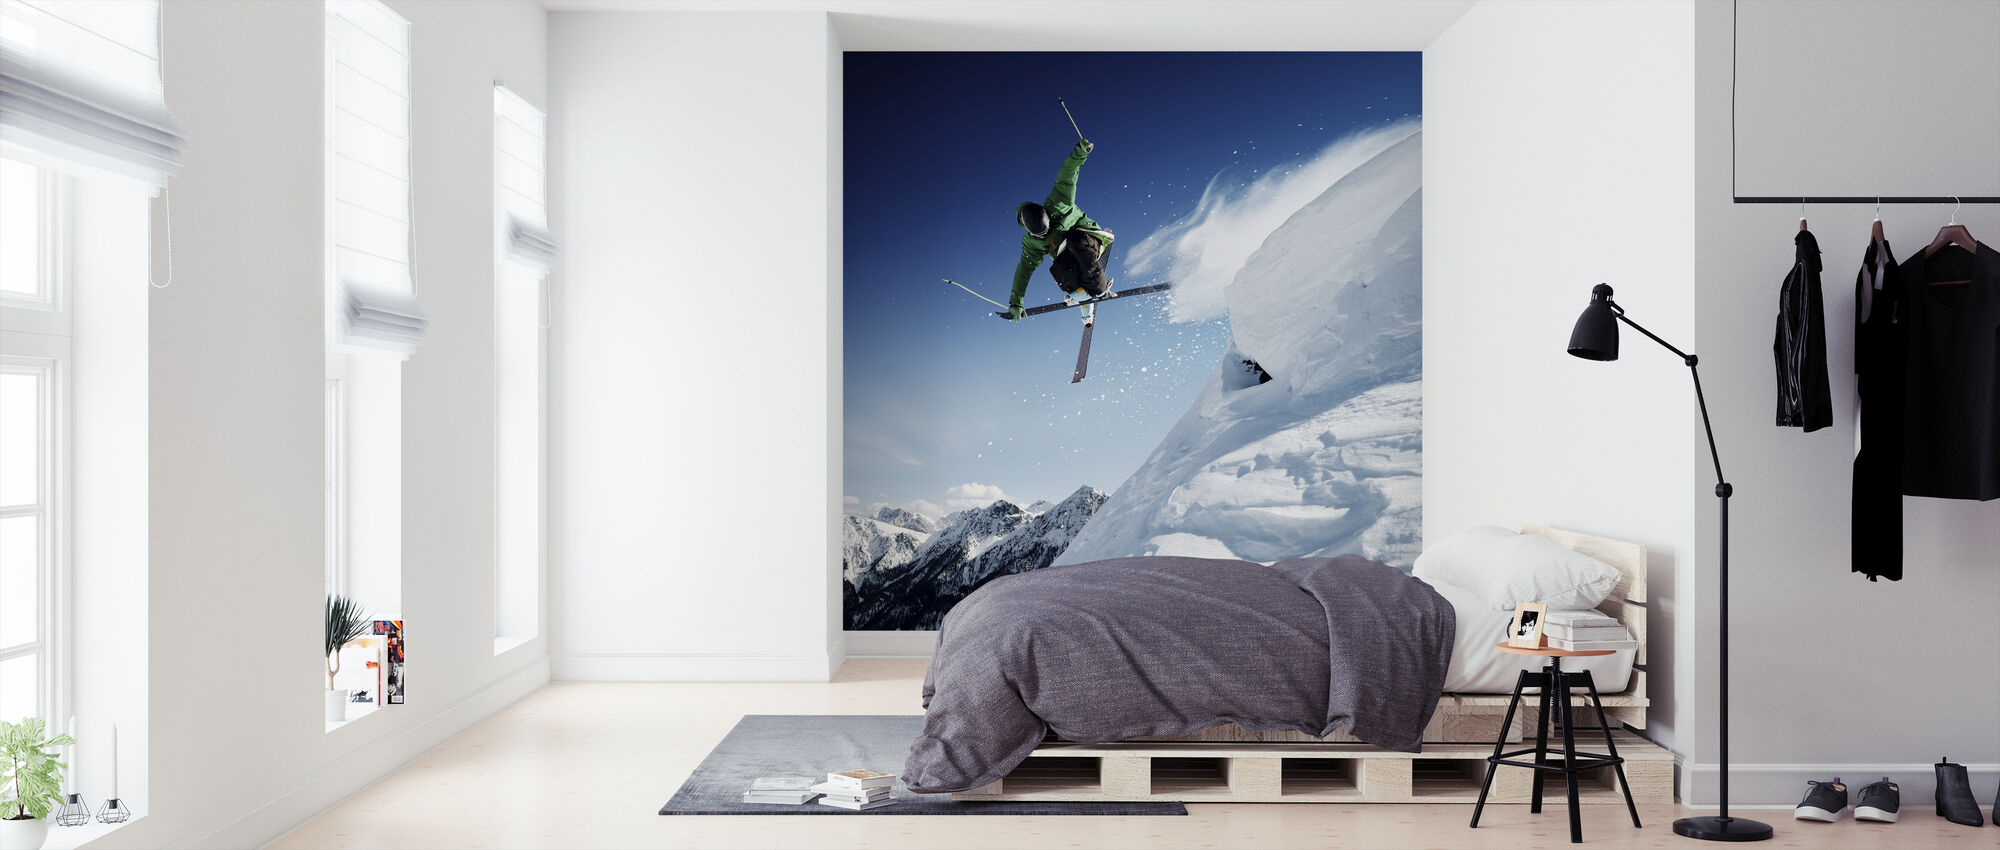 Jumping Skier - Wallpaper - Bedroom